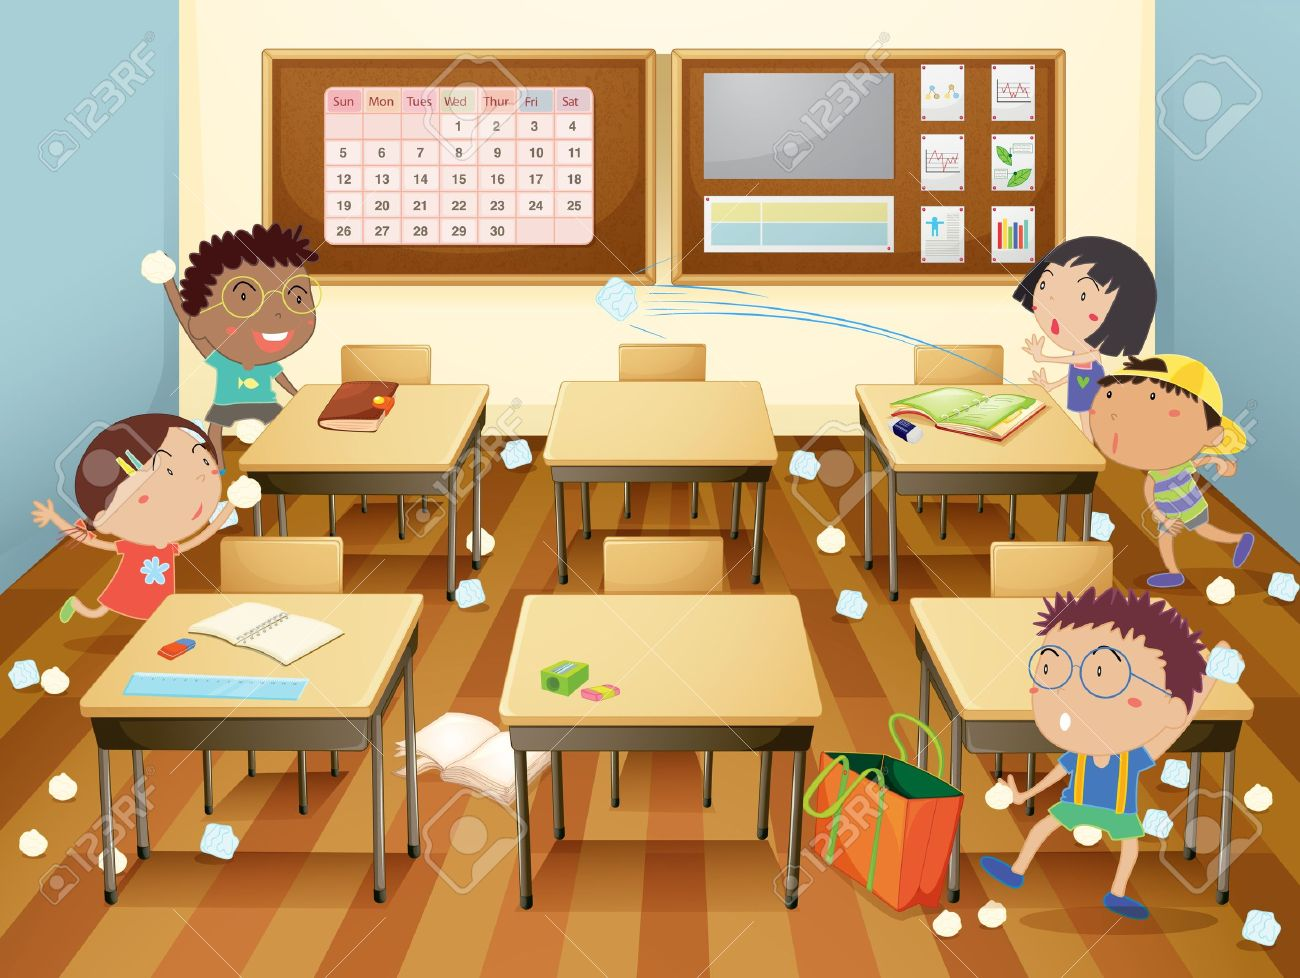 Image result for naughty kids in class cartoon